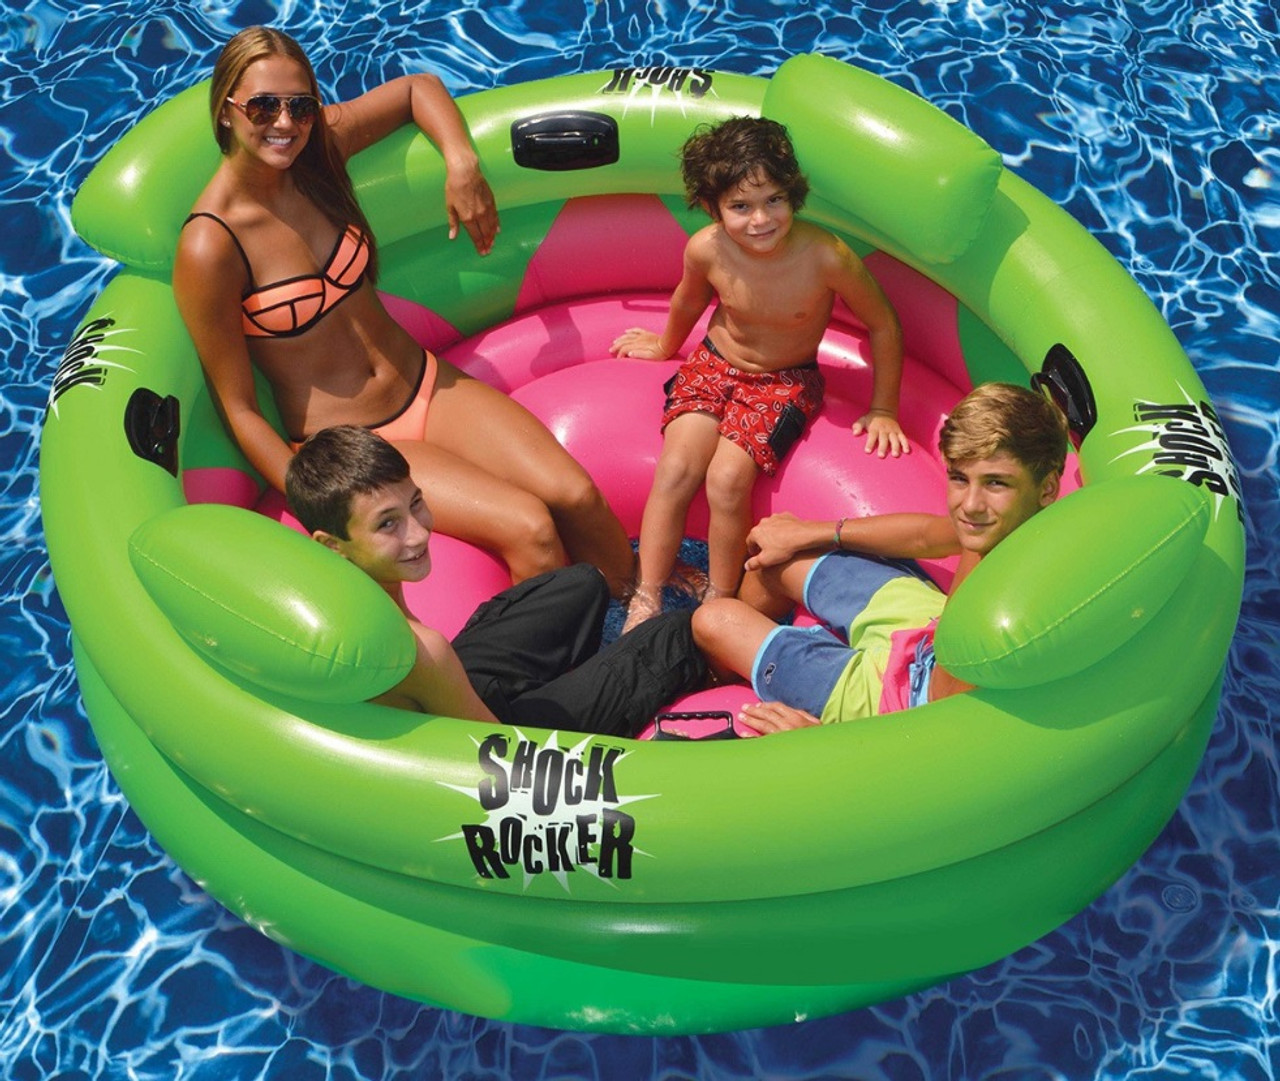 75 water sports inflatable shock rocker swimming pool for Putting shock in pool